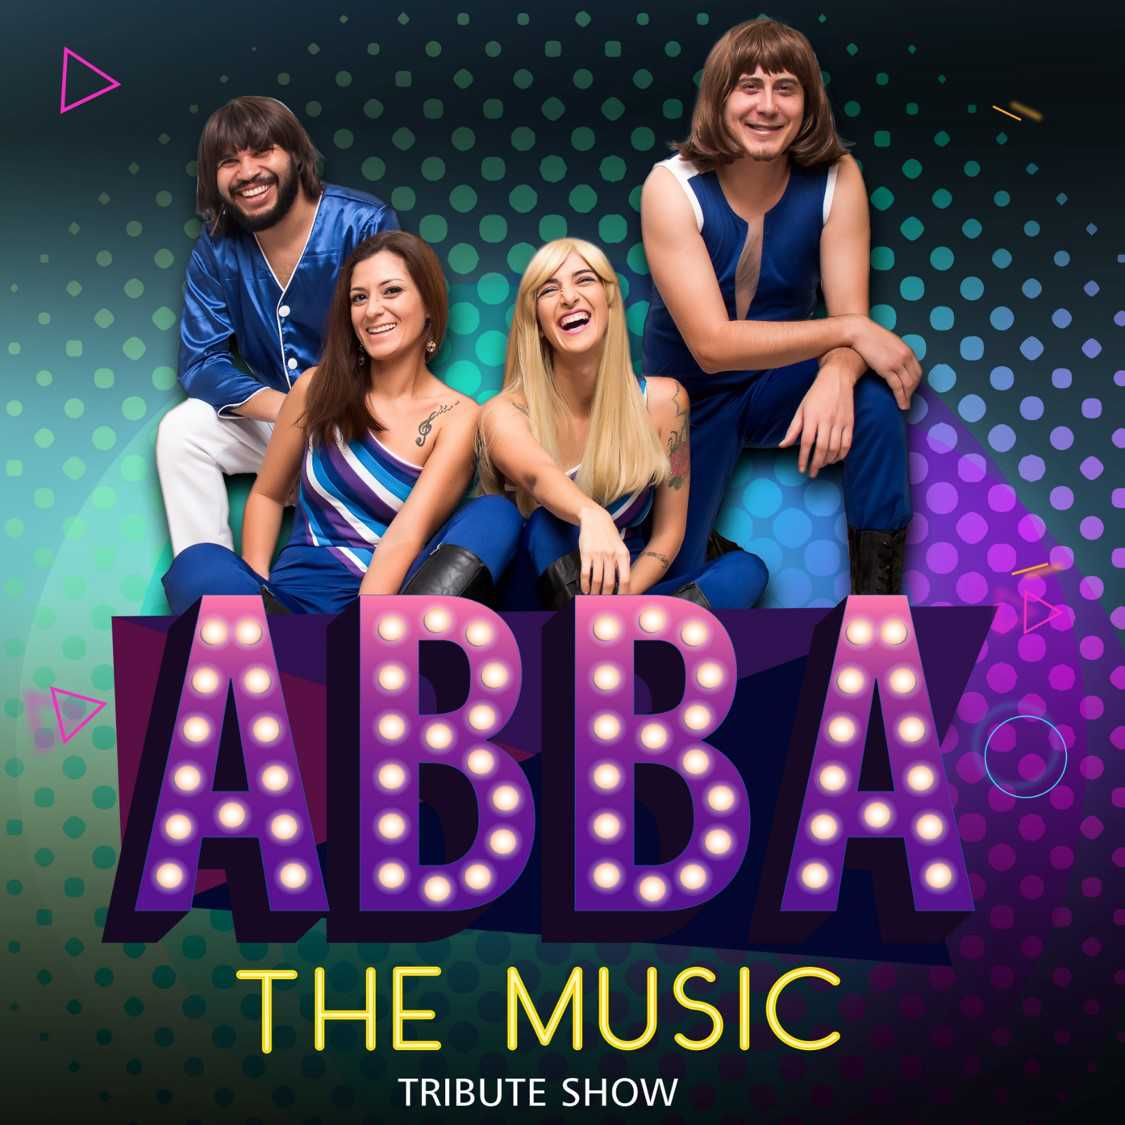 ABBA - THE MUSIC - A TRIBUTE SHOW